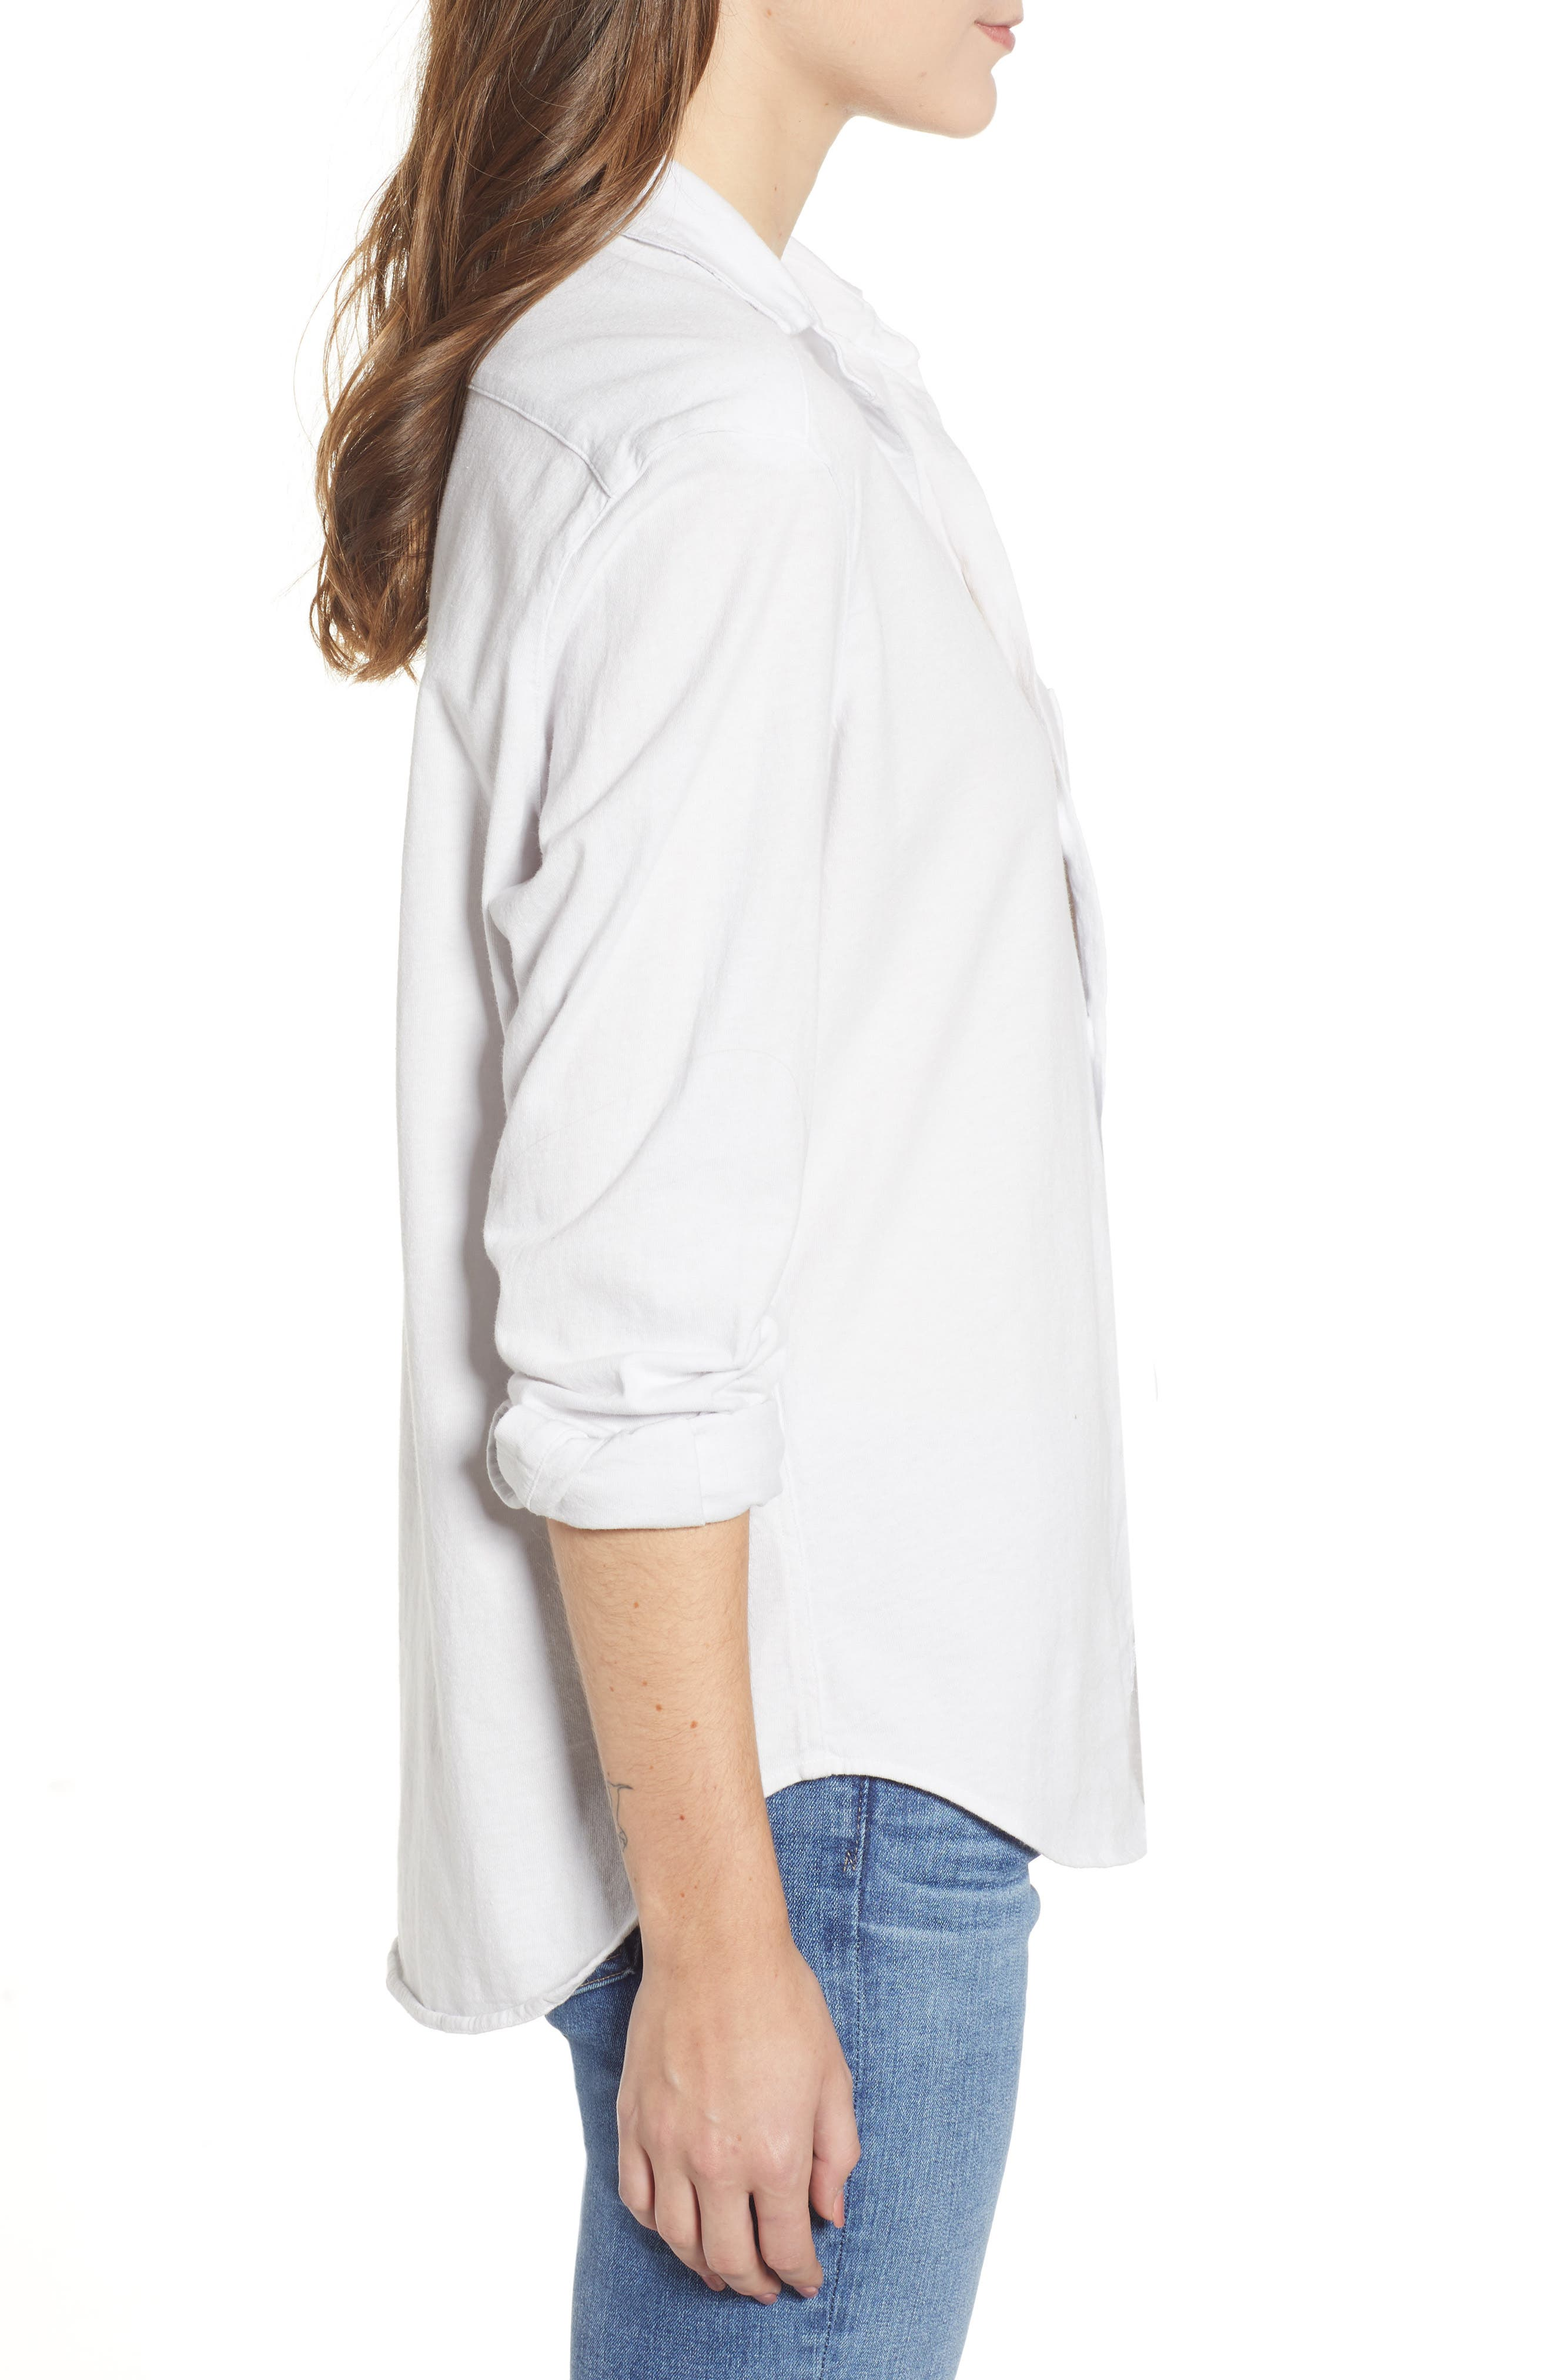 FRANK & EILEEN TEE LAB,                             Eileen Jersey Button Front Shirt,                             Alternate thumbnail 3, color,                             DIRTY WHITE